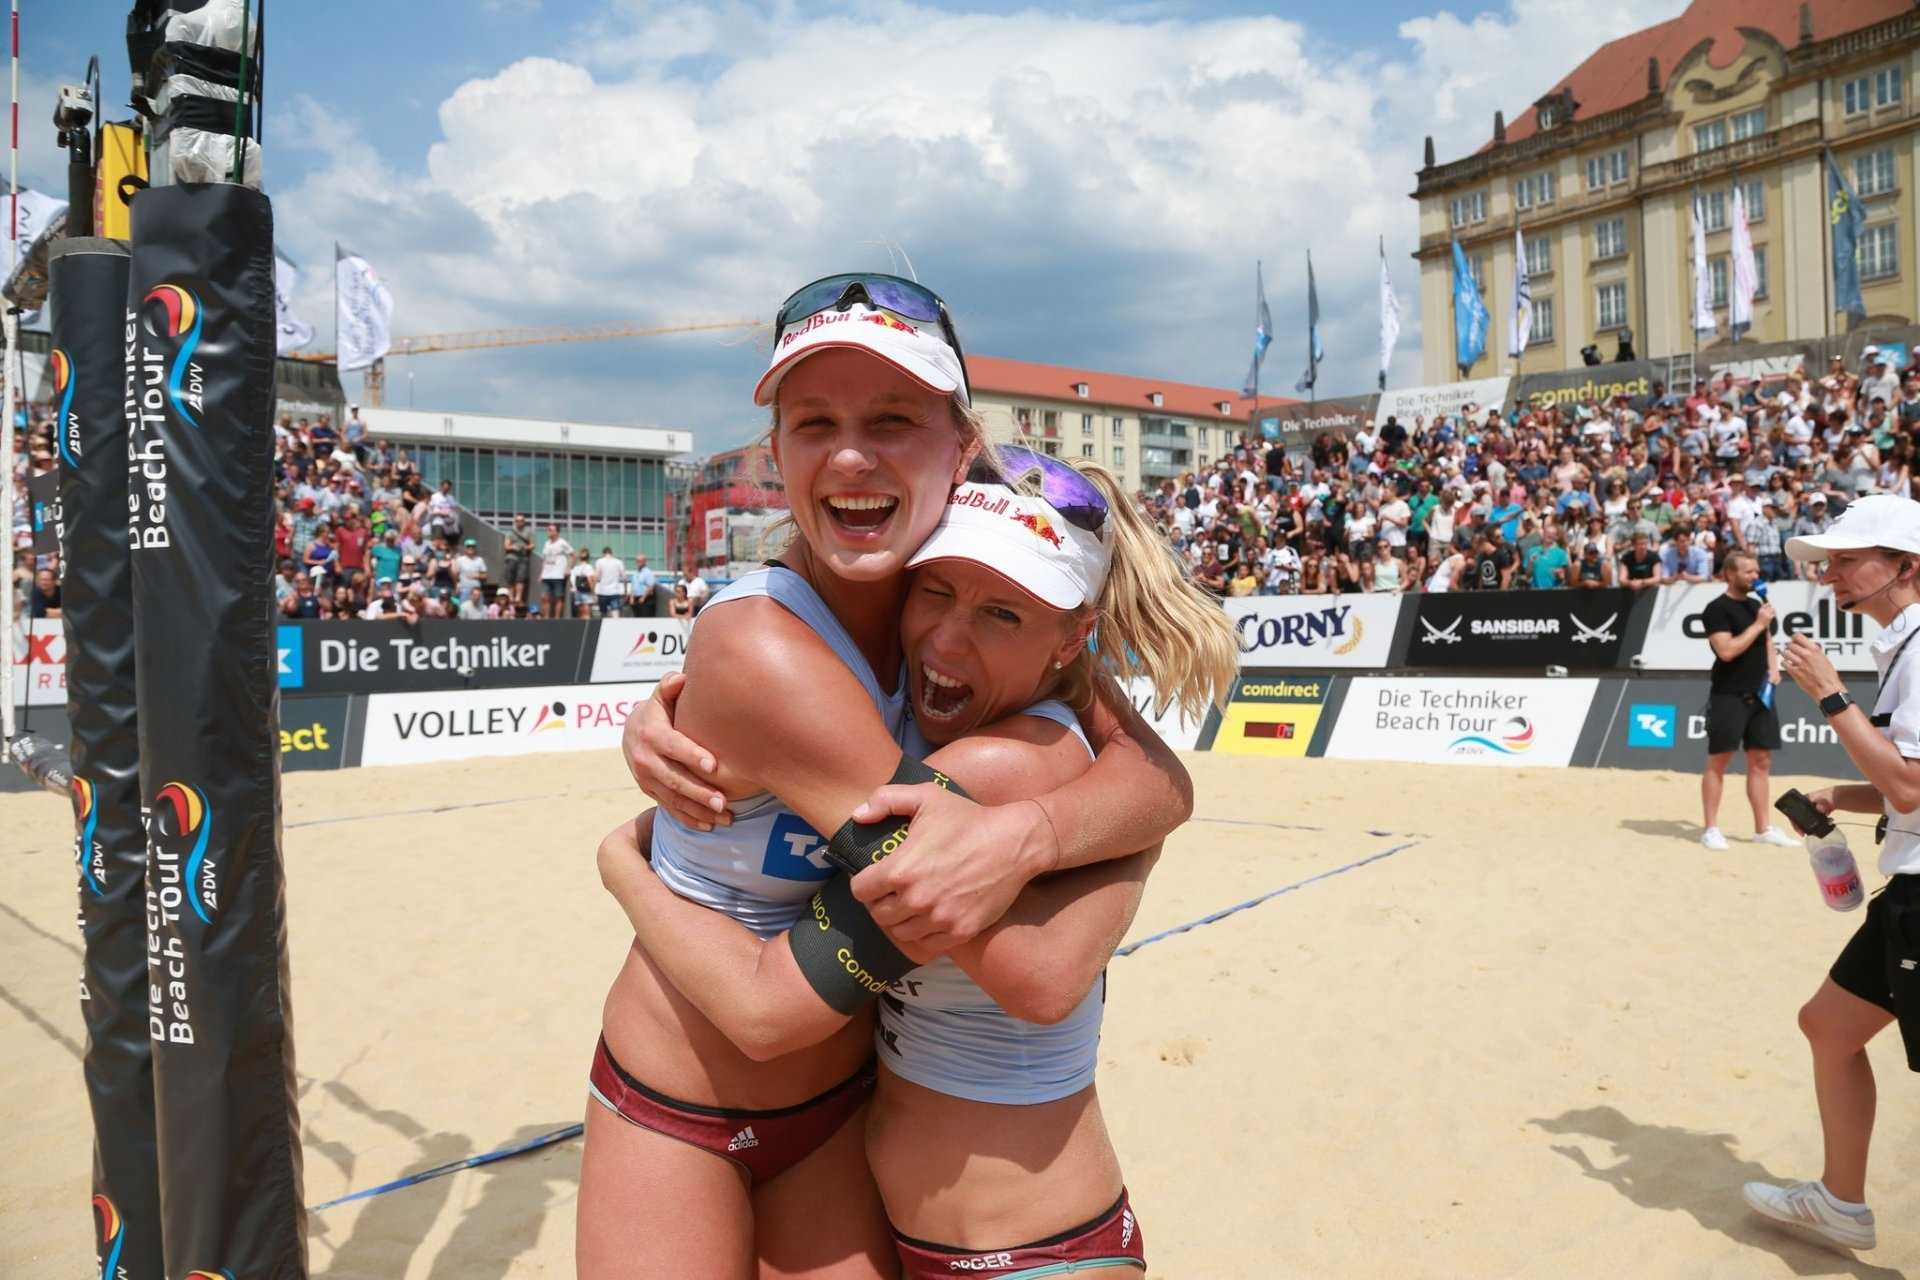 Kozuch and Borger were the champions of the second event of the German Tour (Photocredit: Die Techniker Beach Tour)